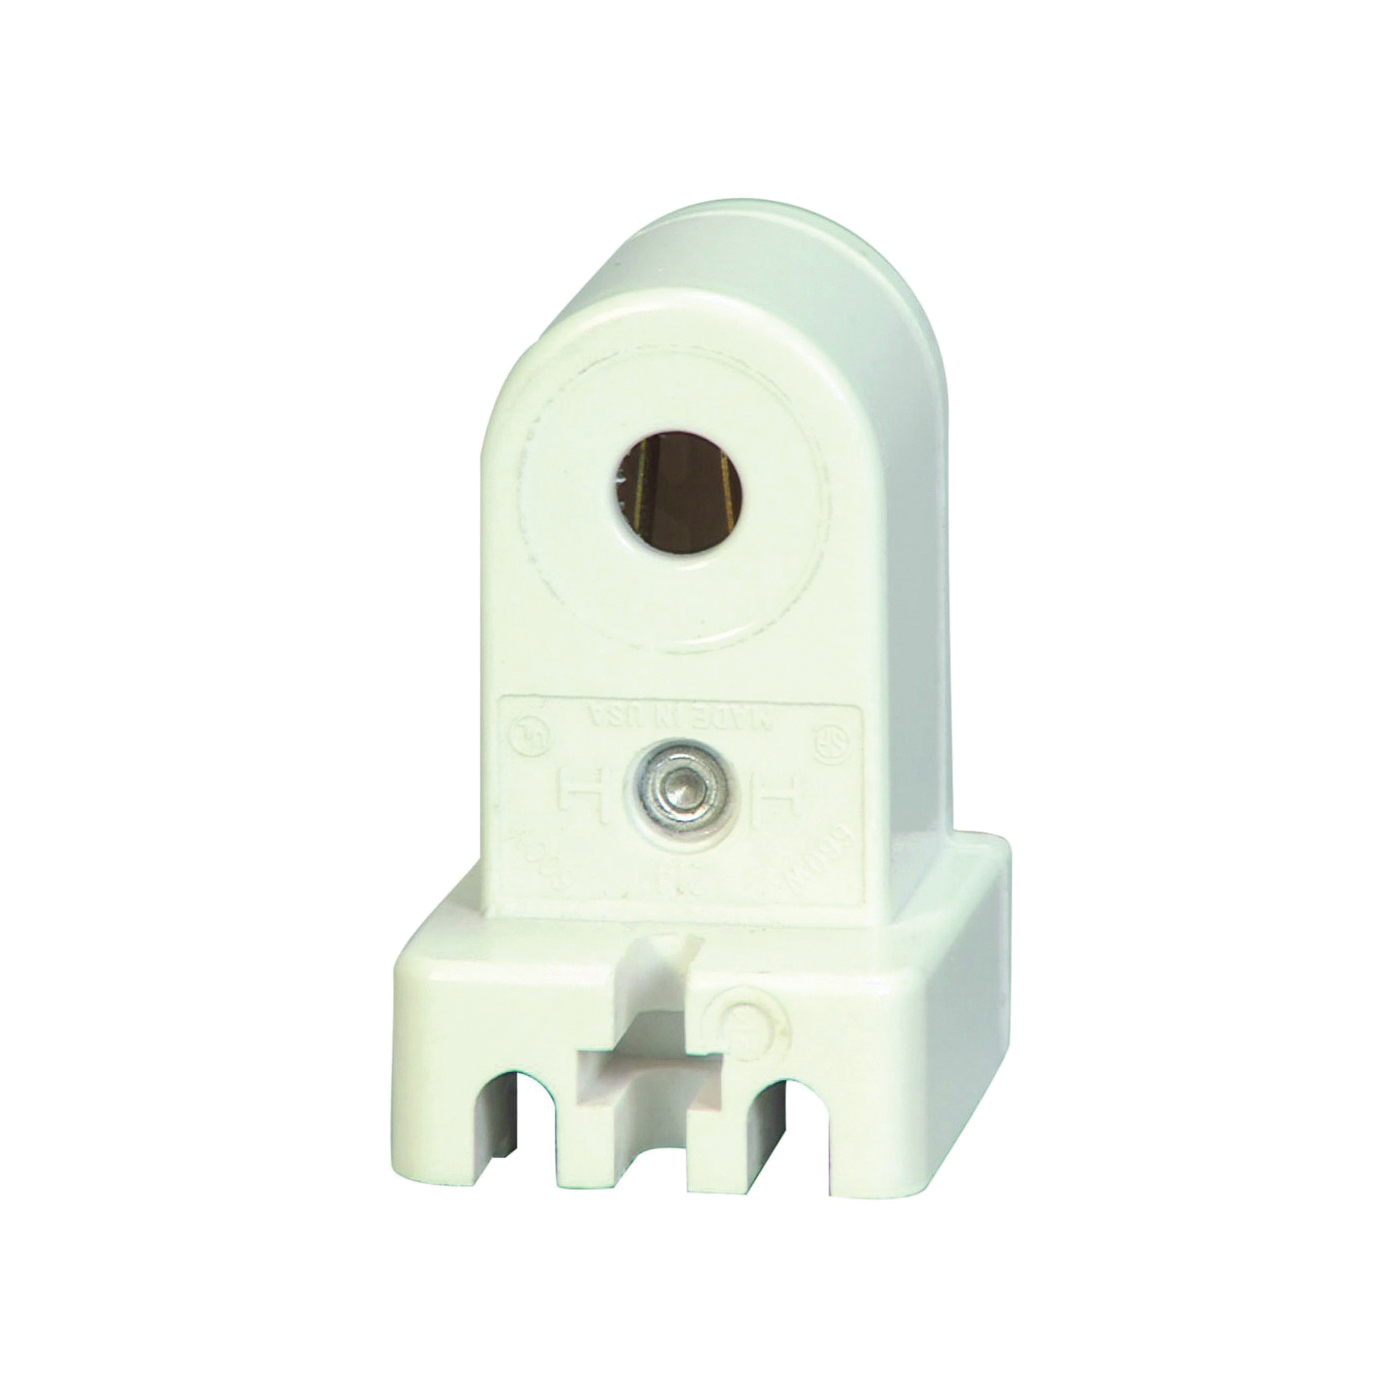 Picture of Eaton Wiring Devices 2503W-BOX Lamp Holder, 600 VAC, 660 W, White